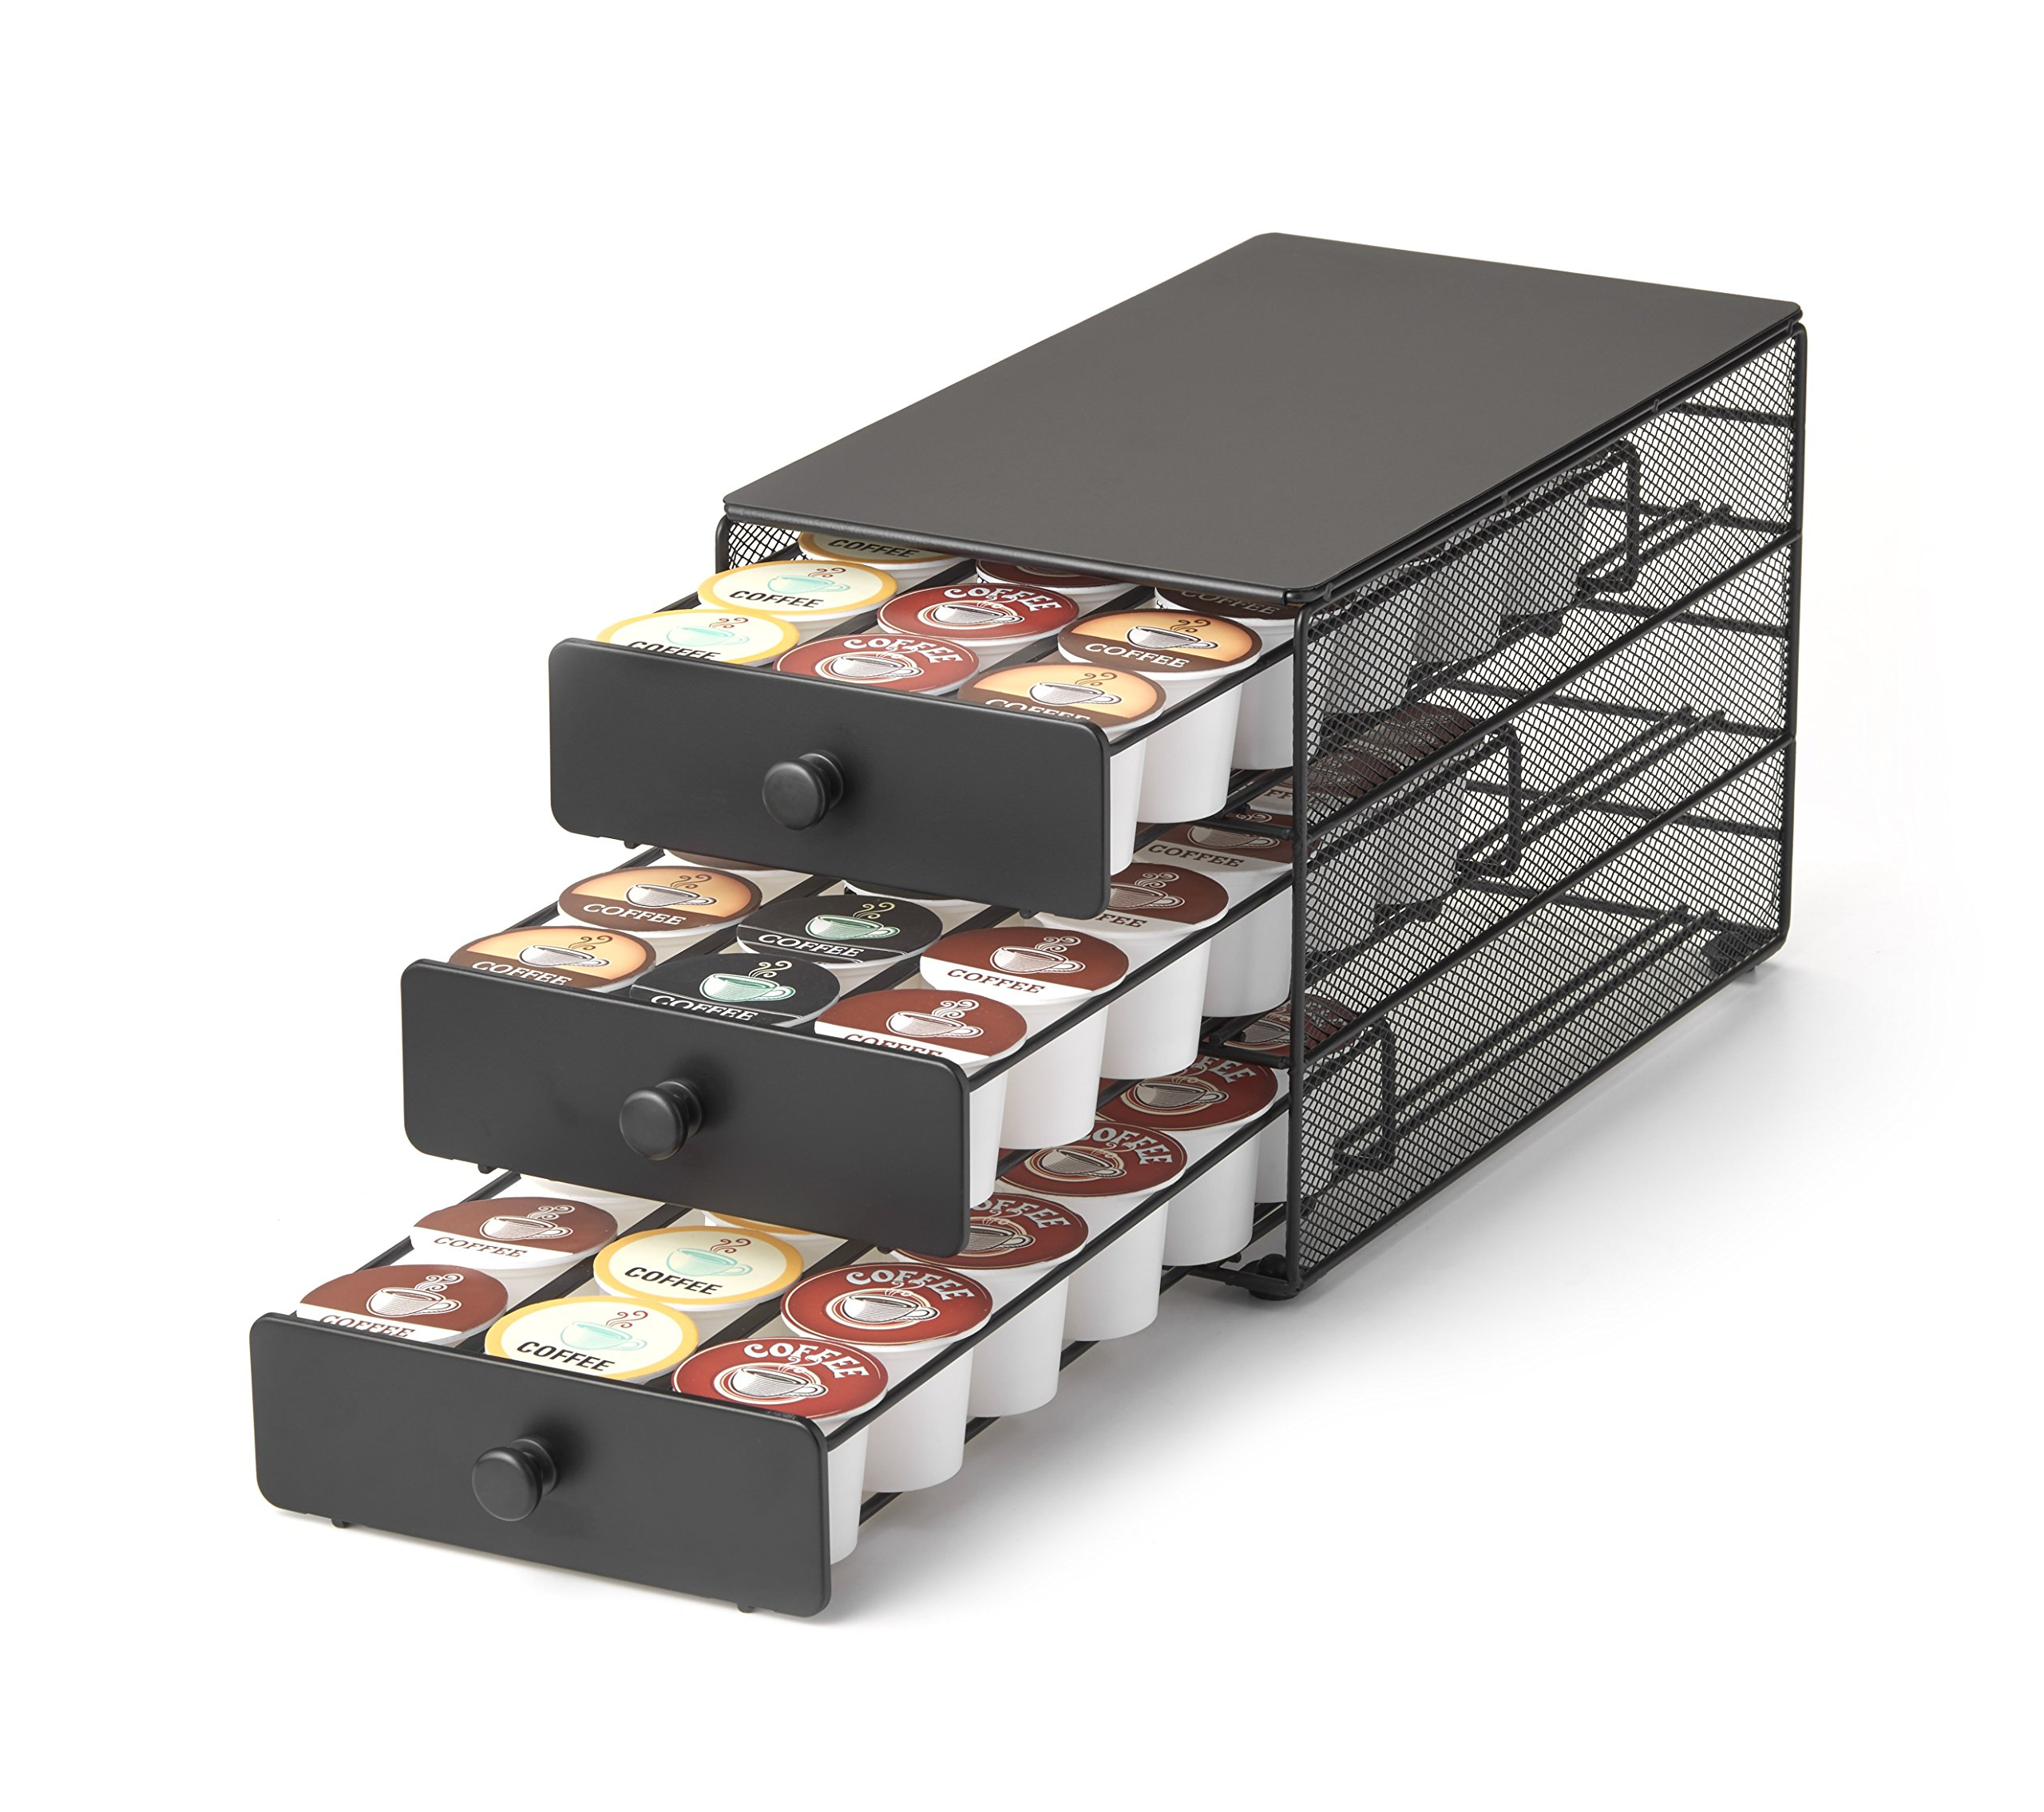 Nifty 3-tier Large Capacity Coffee Pod Storage Drawer for K-Cup Pods. 54 Pod Capacity only 7 inches wide by NIFTY